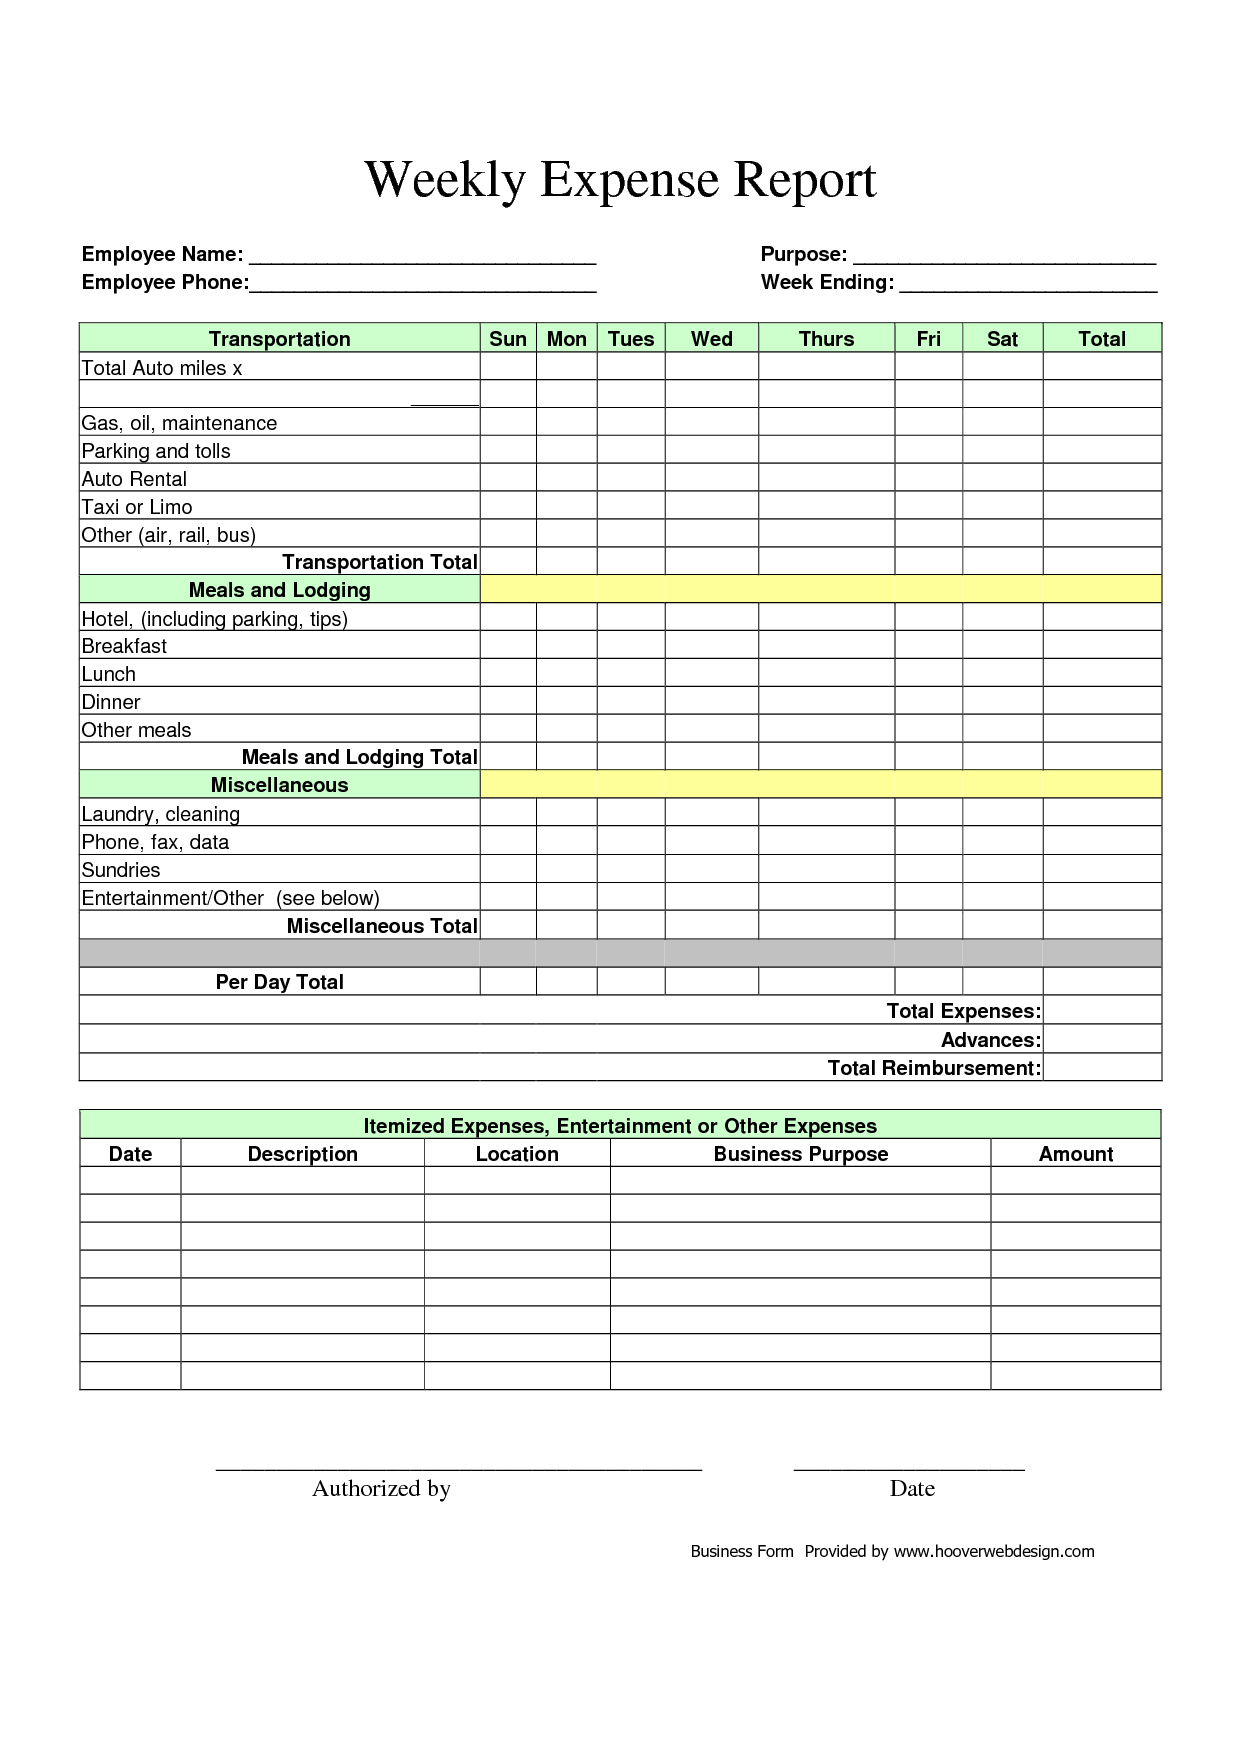 Expense Reports Templates and Free Blank Weekly Expense Report Template Sample for Personal and